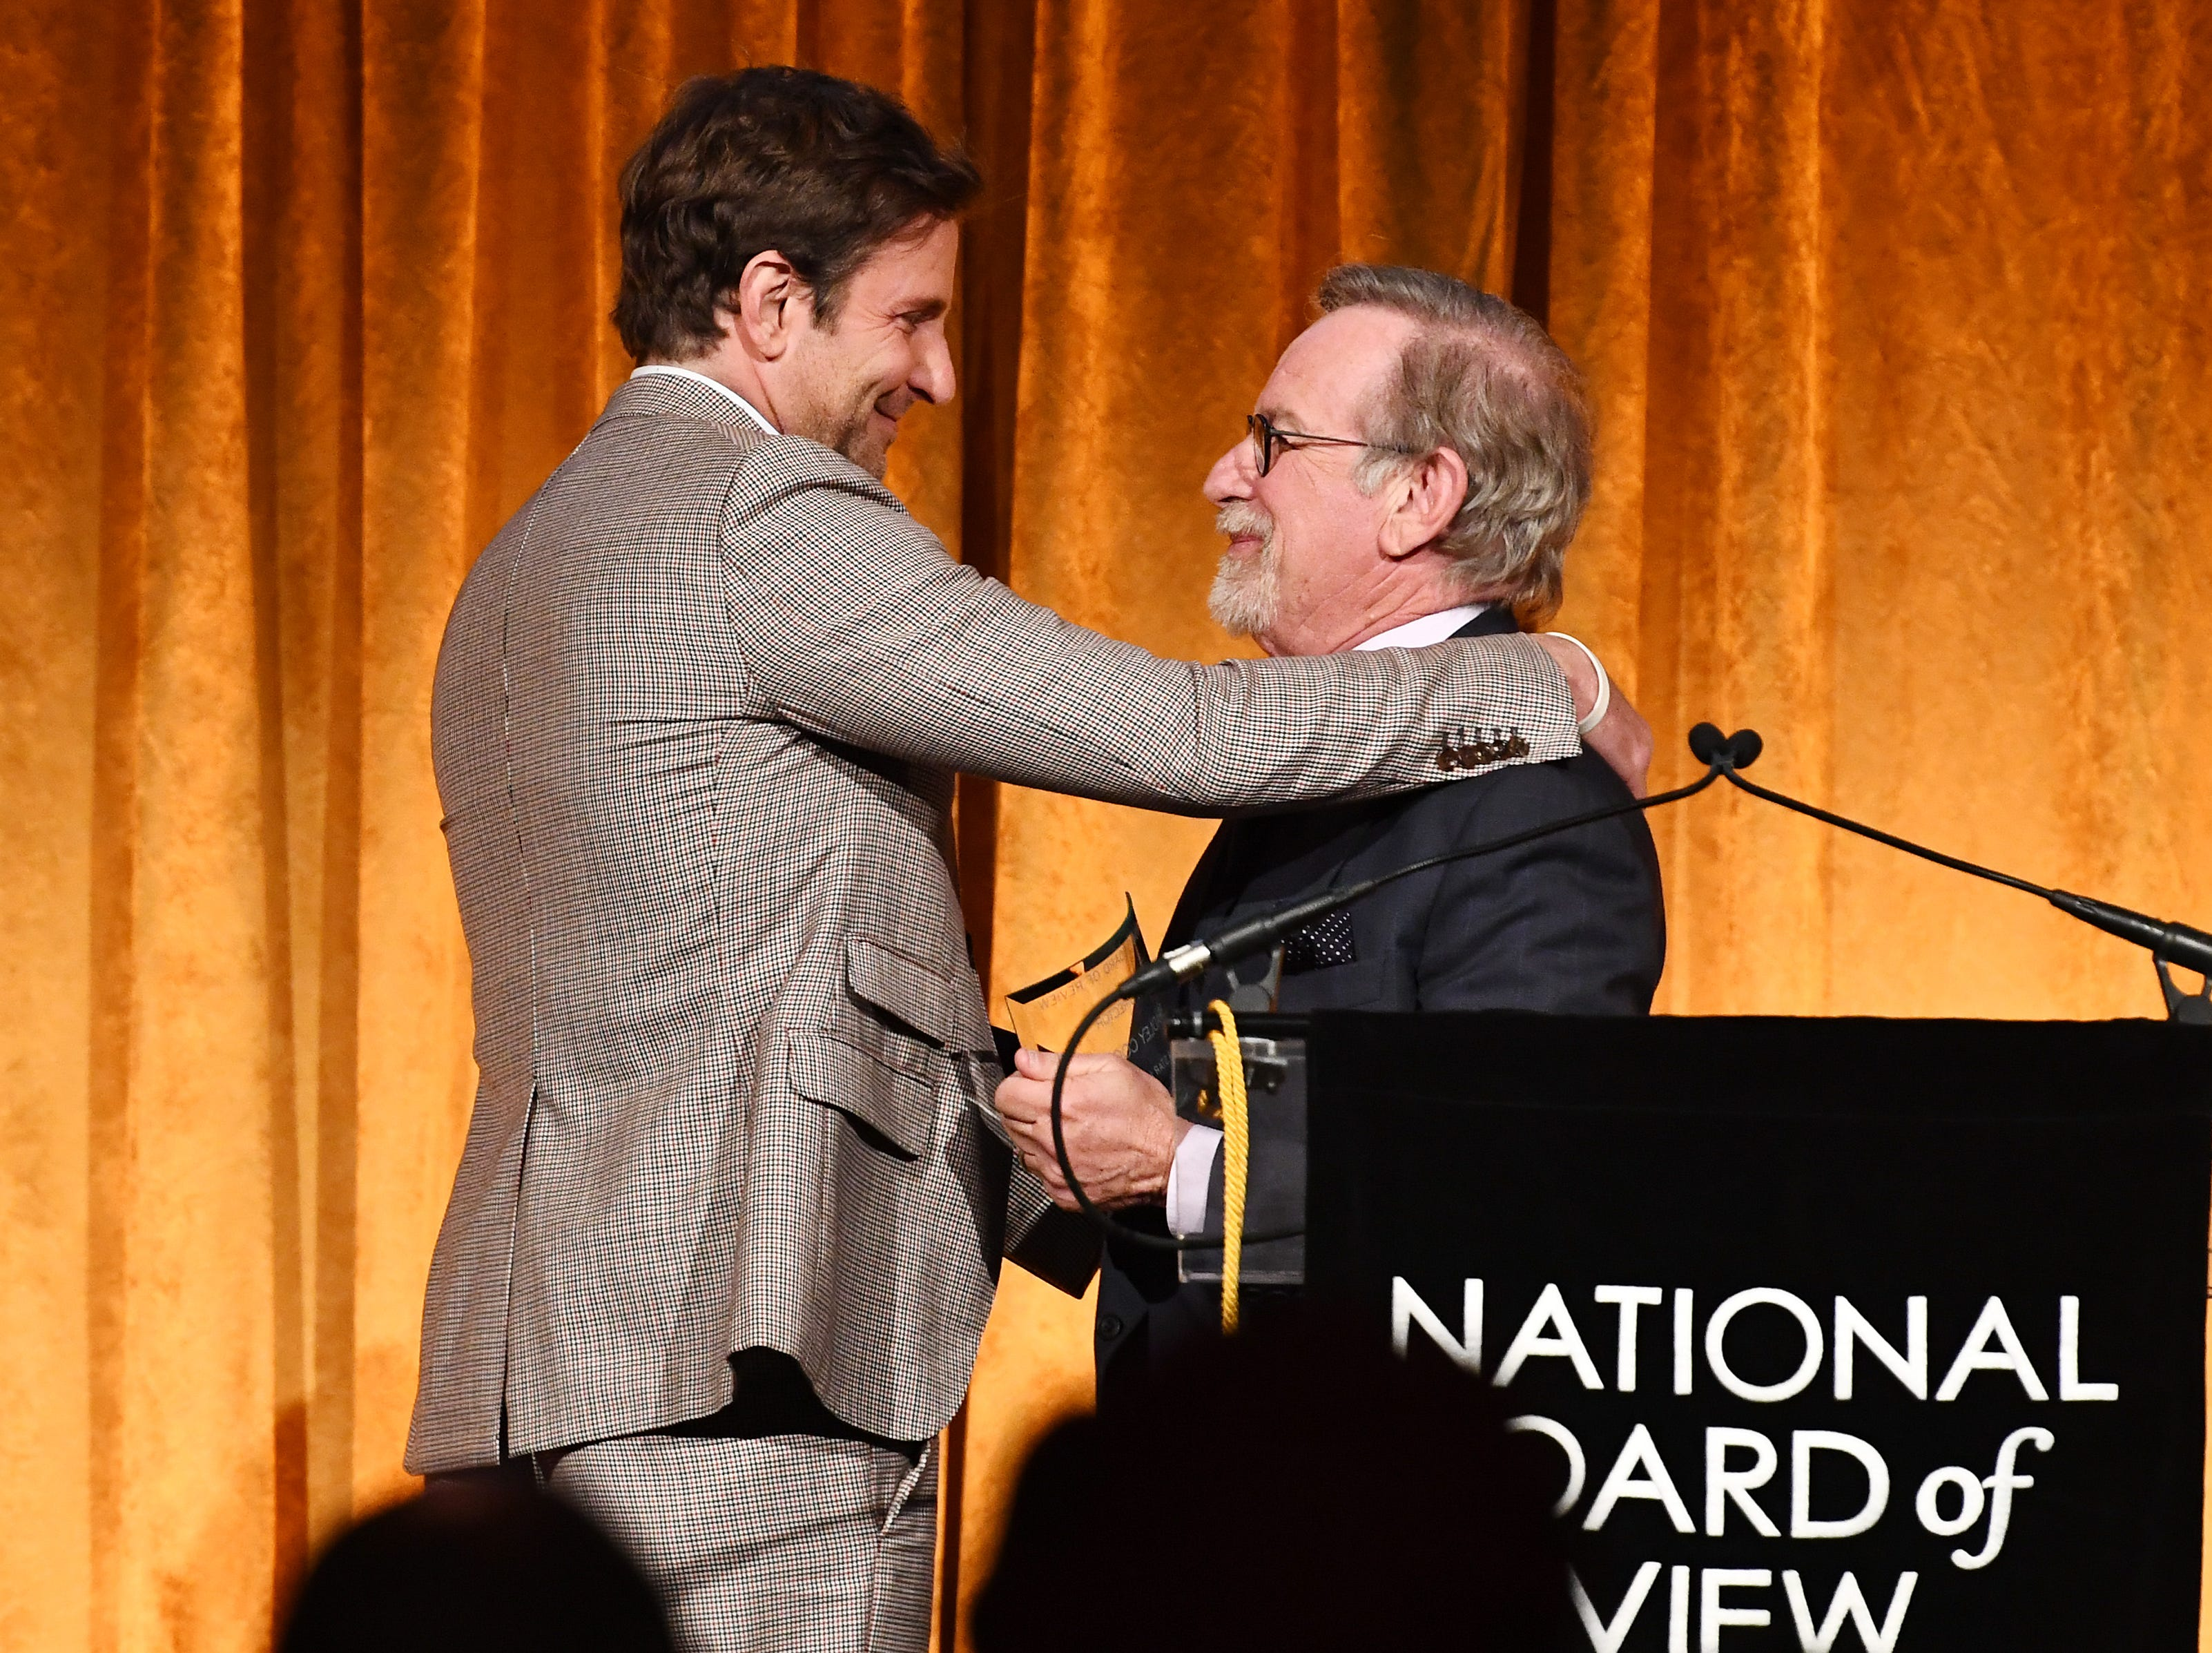 NEW YORK, NY - JANUARY 08:  Bradley Cooper accepts the Best Director award for A Star Is Born from Steven Spielberg during The National Board of Review Annual Awards Gala at Cipriani 42nd Street on January 8, 2019 in New York City.  (Photo by Dimitrios Kambouris/Getty Images for National Board of Review) ORG XMIT: 775277327 ORIG FILE ID: 1079462160